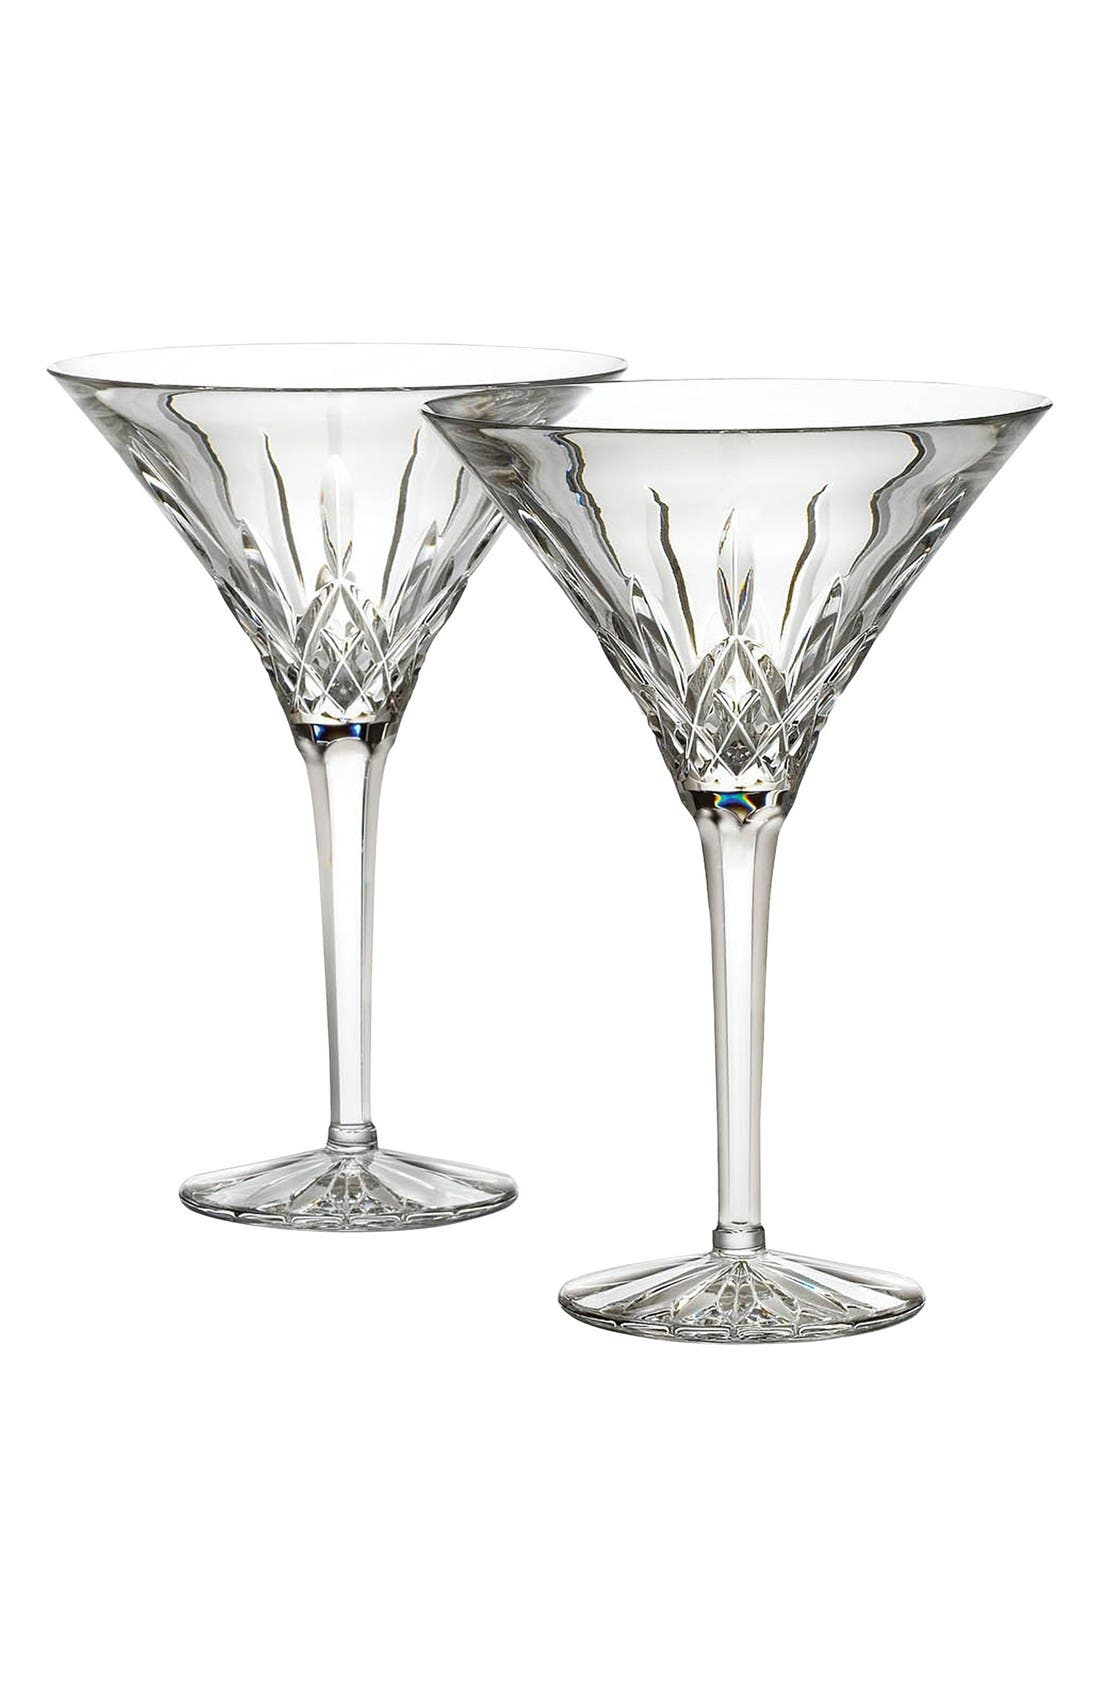 Alternate Image 1 Selected - Waterford 'Lismore' Lead Crystal Martini Glasses (Set of 2)